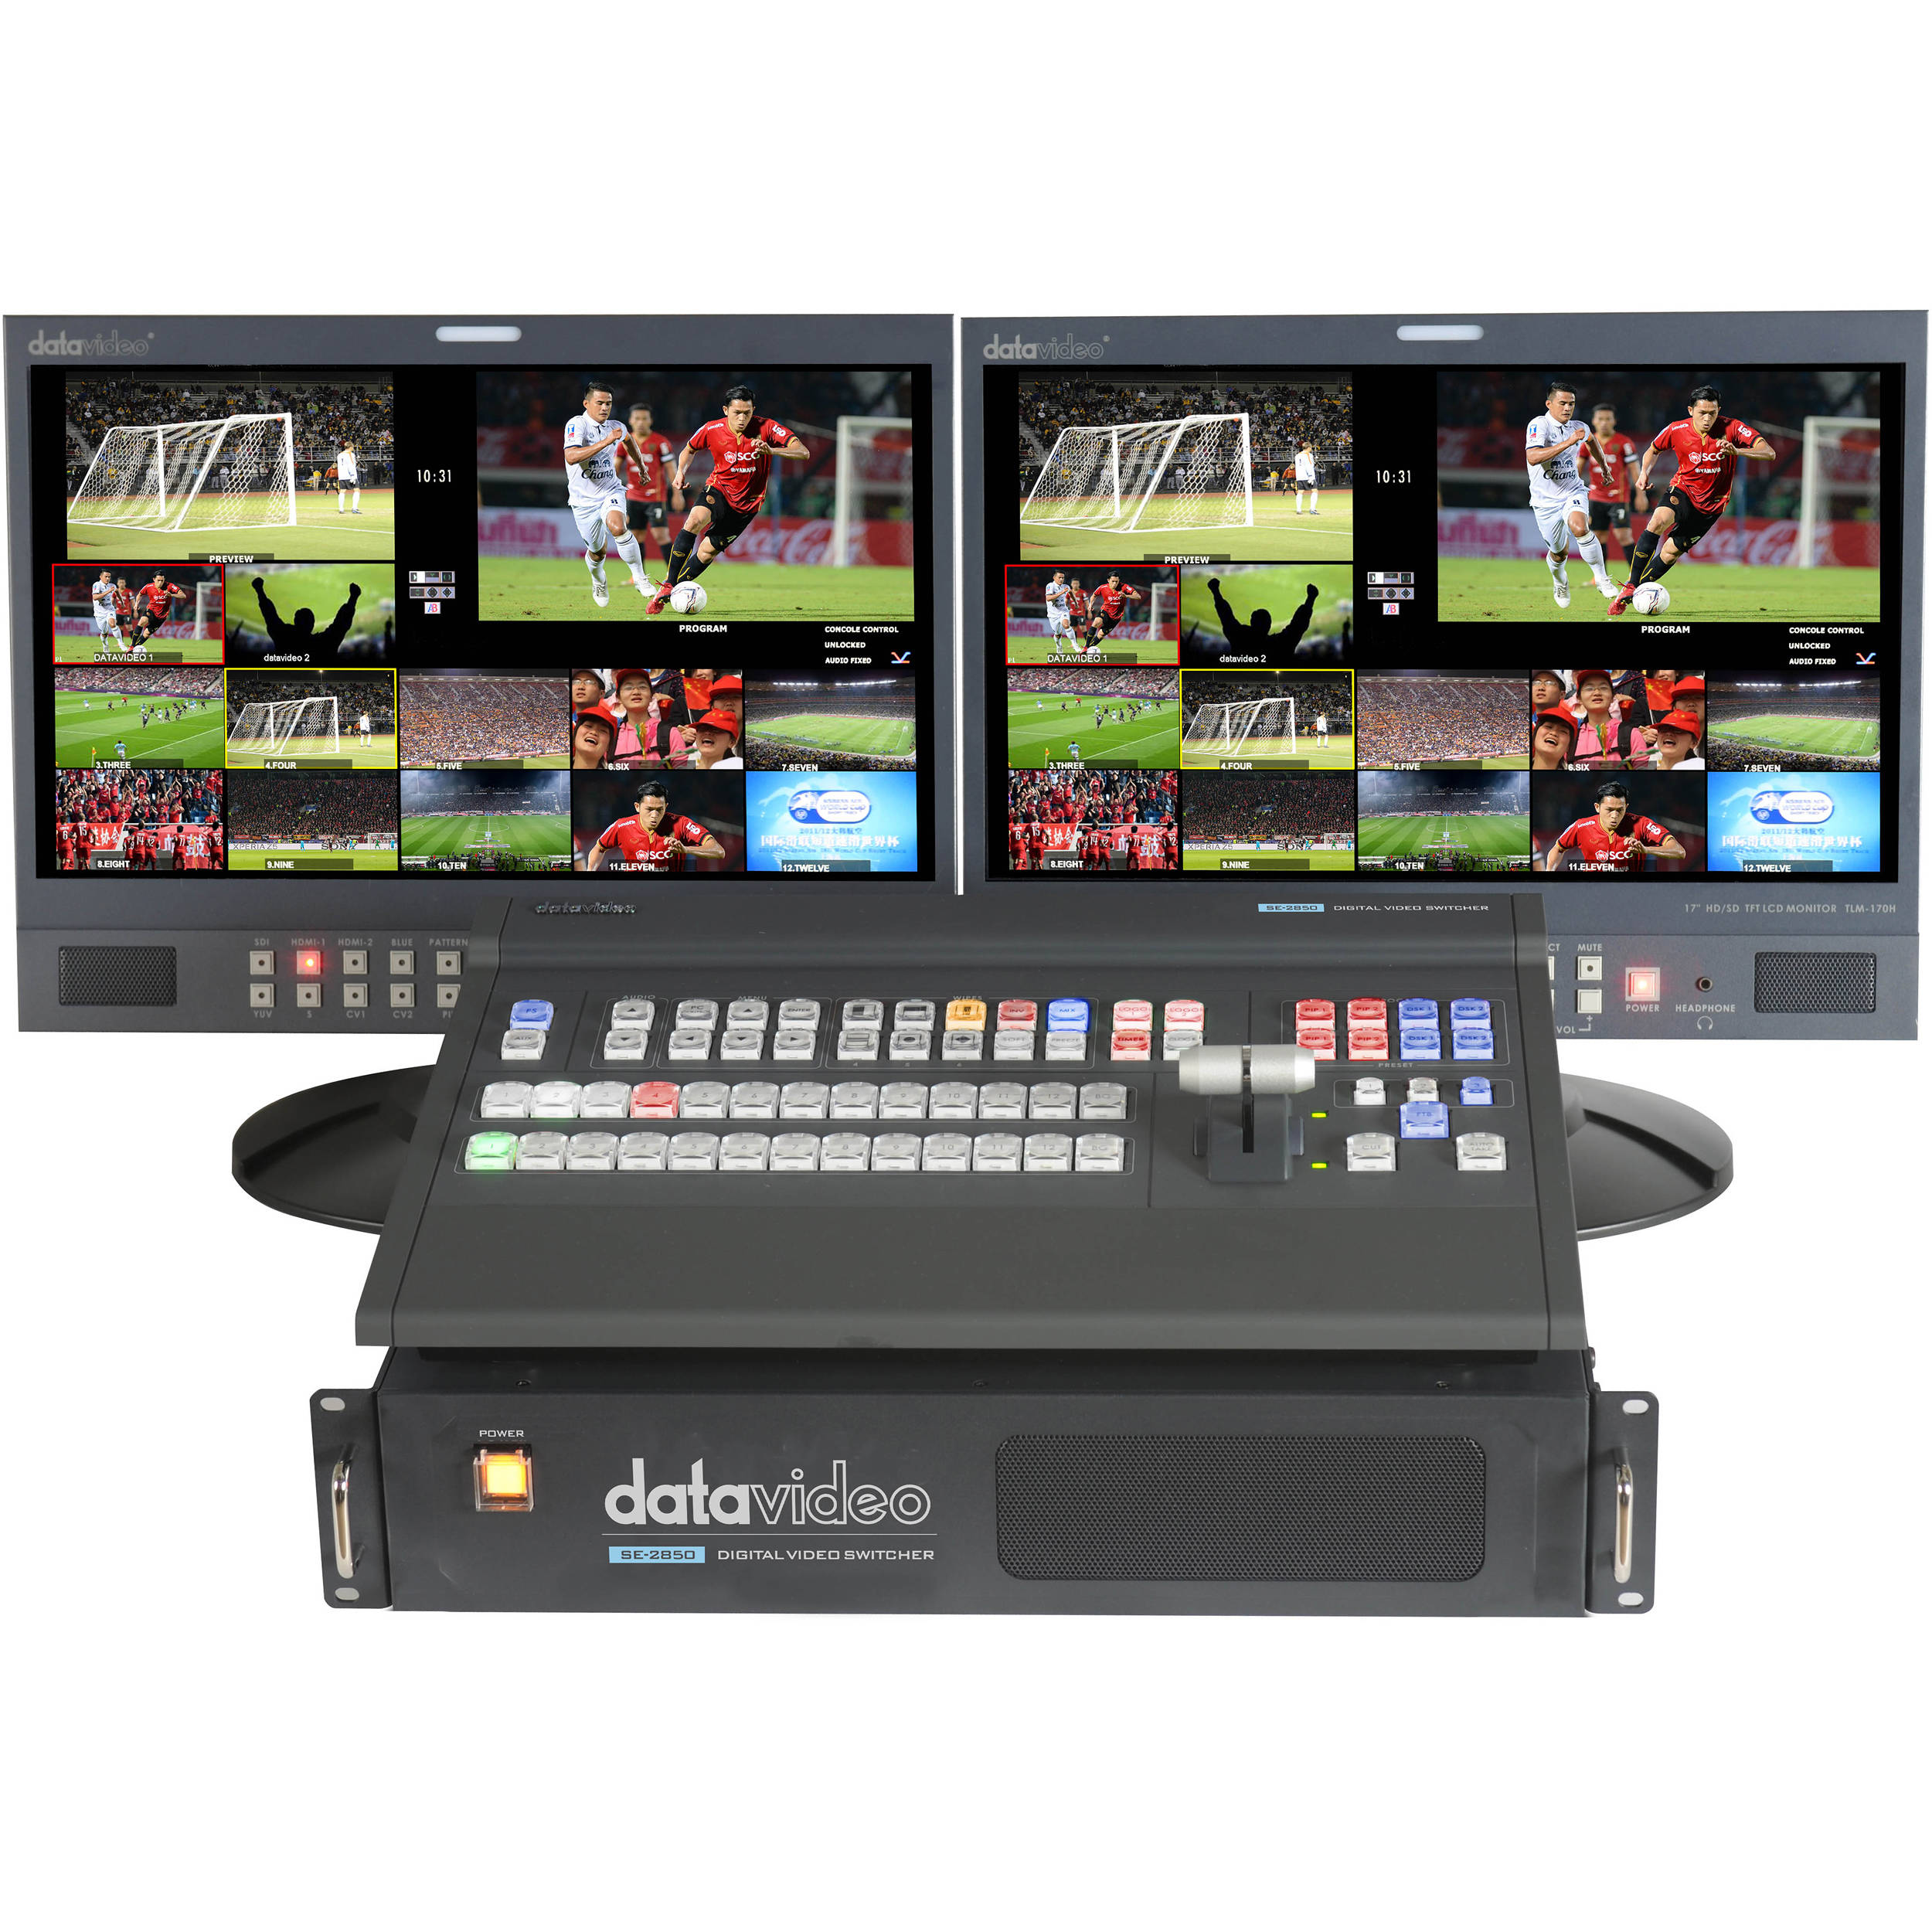 Datavideo Se 2850 Hd Sd 12 Channel Video Switcher Se2850 Bh Rbvhda8 3g Sdsdi 1 Input 8 Output Distribution Amplifier Monitor Not Included